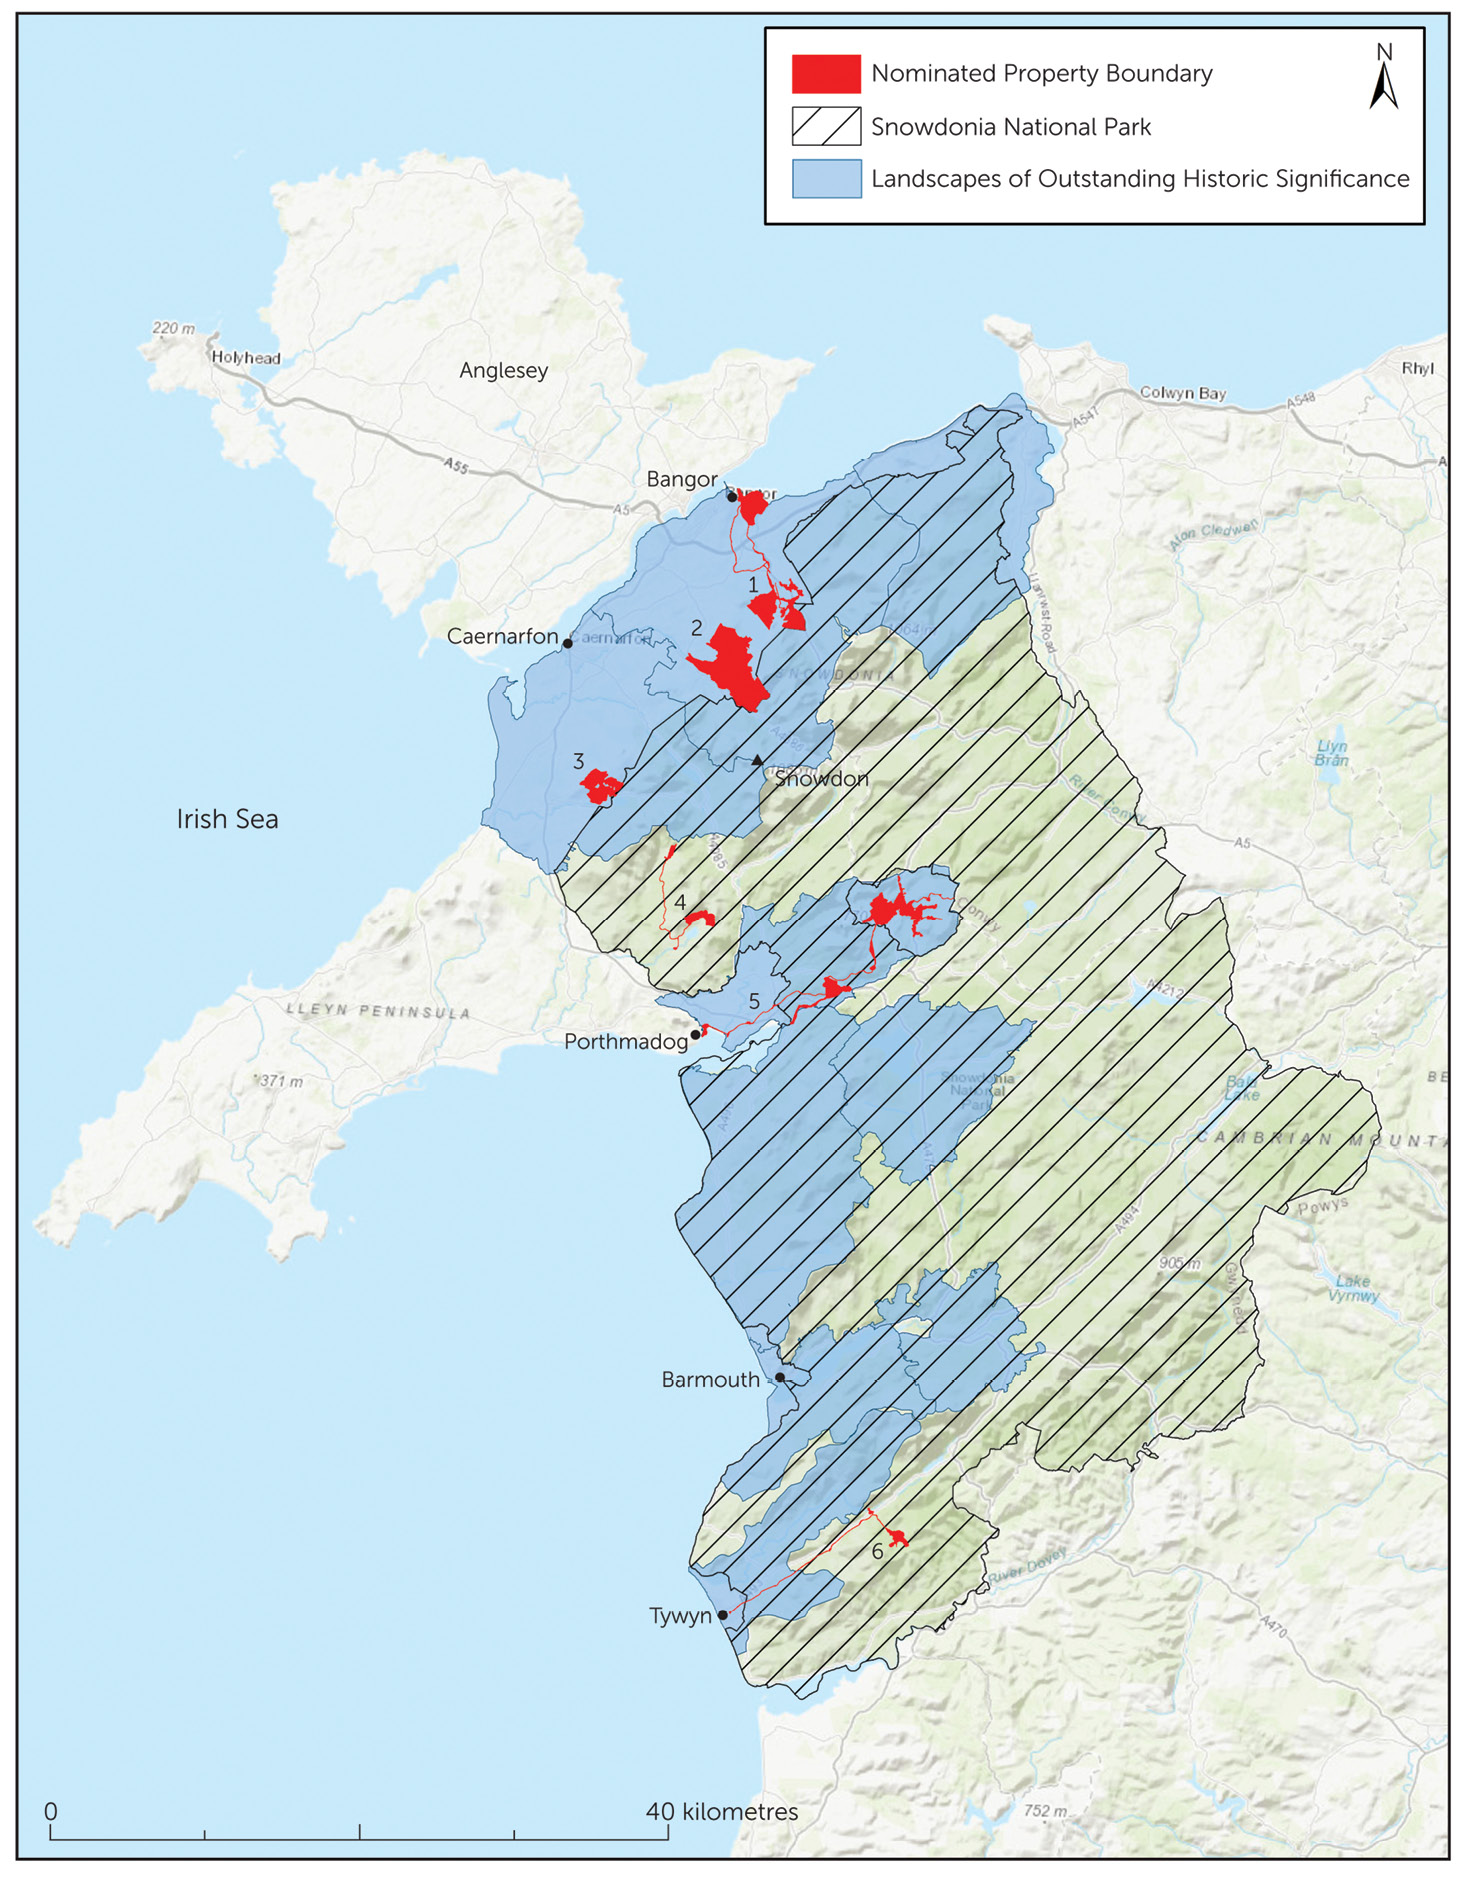 above The newly designated World Heritage landscape, with the component parts coloured red, along with the protected landscapes of the Eryri (Snowdonia) National Park (diagonal lines), and the associated Landscapes of Outstanding Historical Significance (blue).